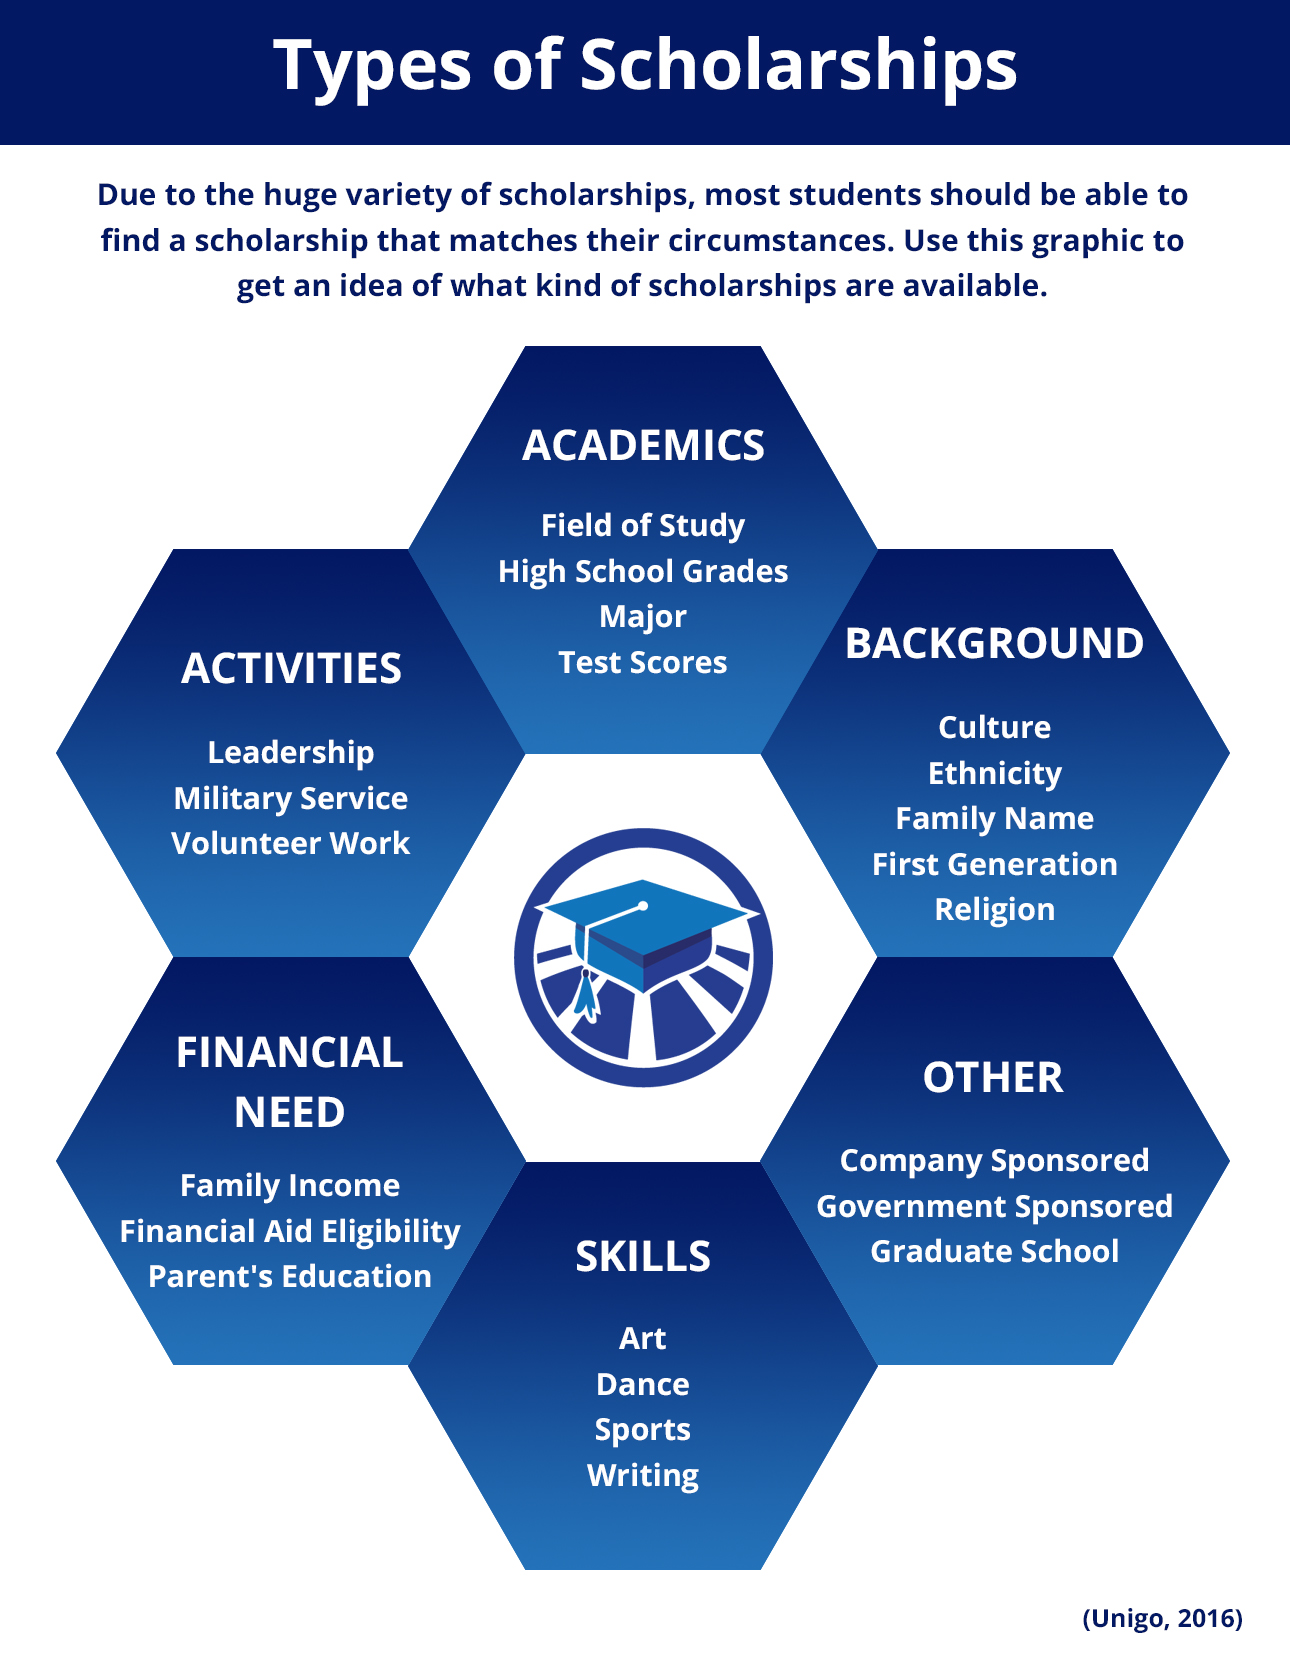 types_of_scholarships_infographic 2.jpg